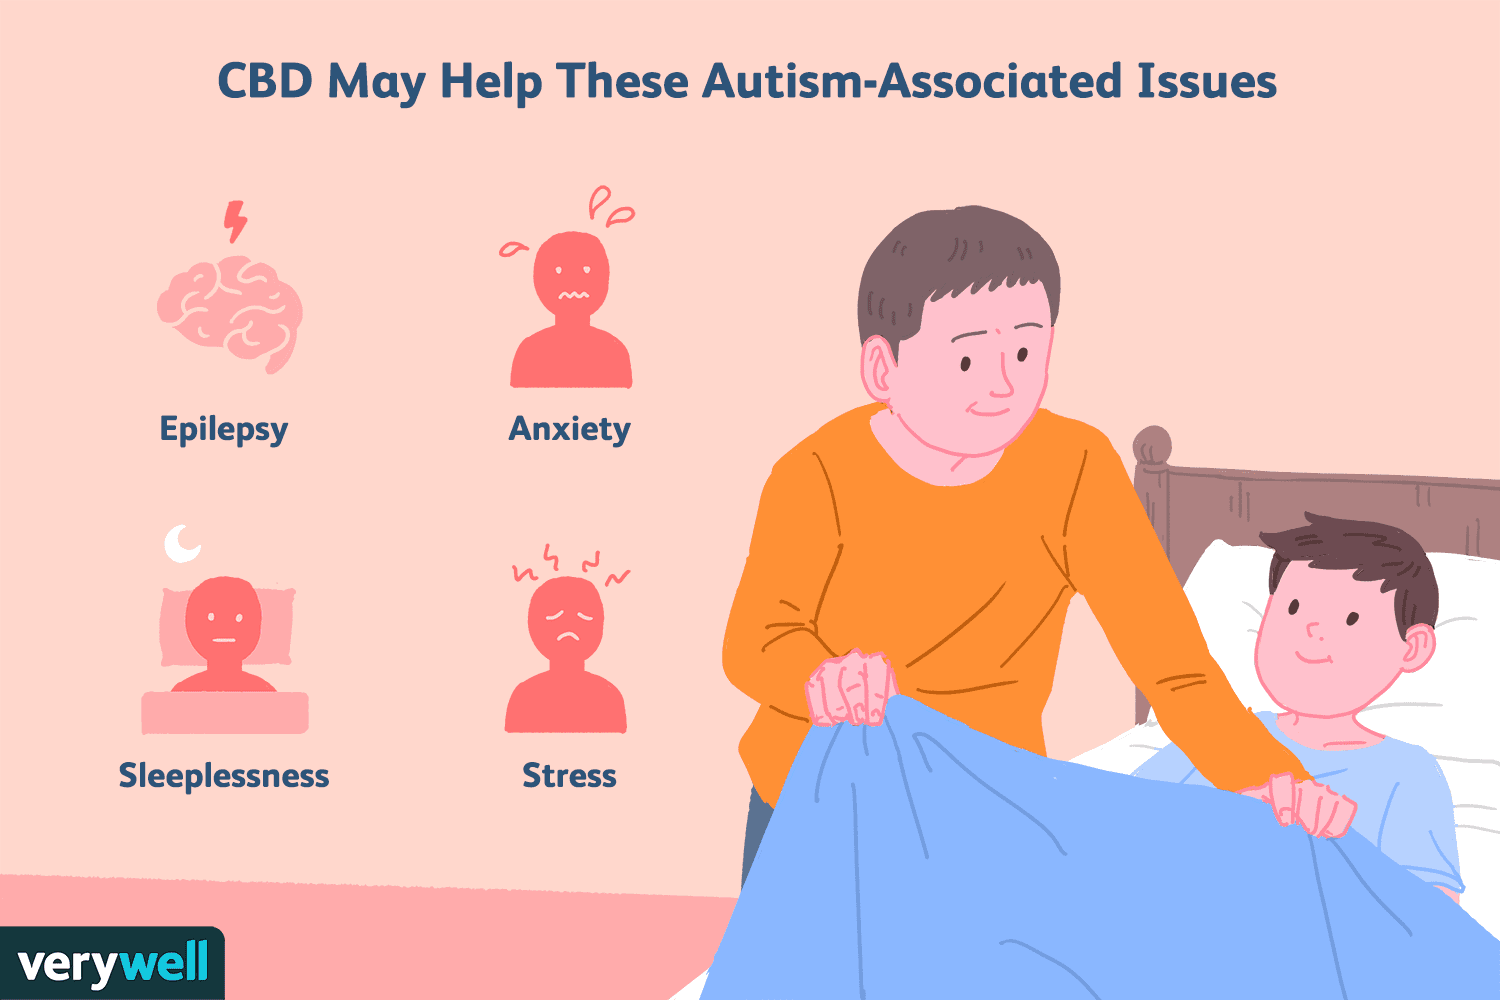 CBD May Help These Autism-Associated Issues